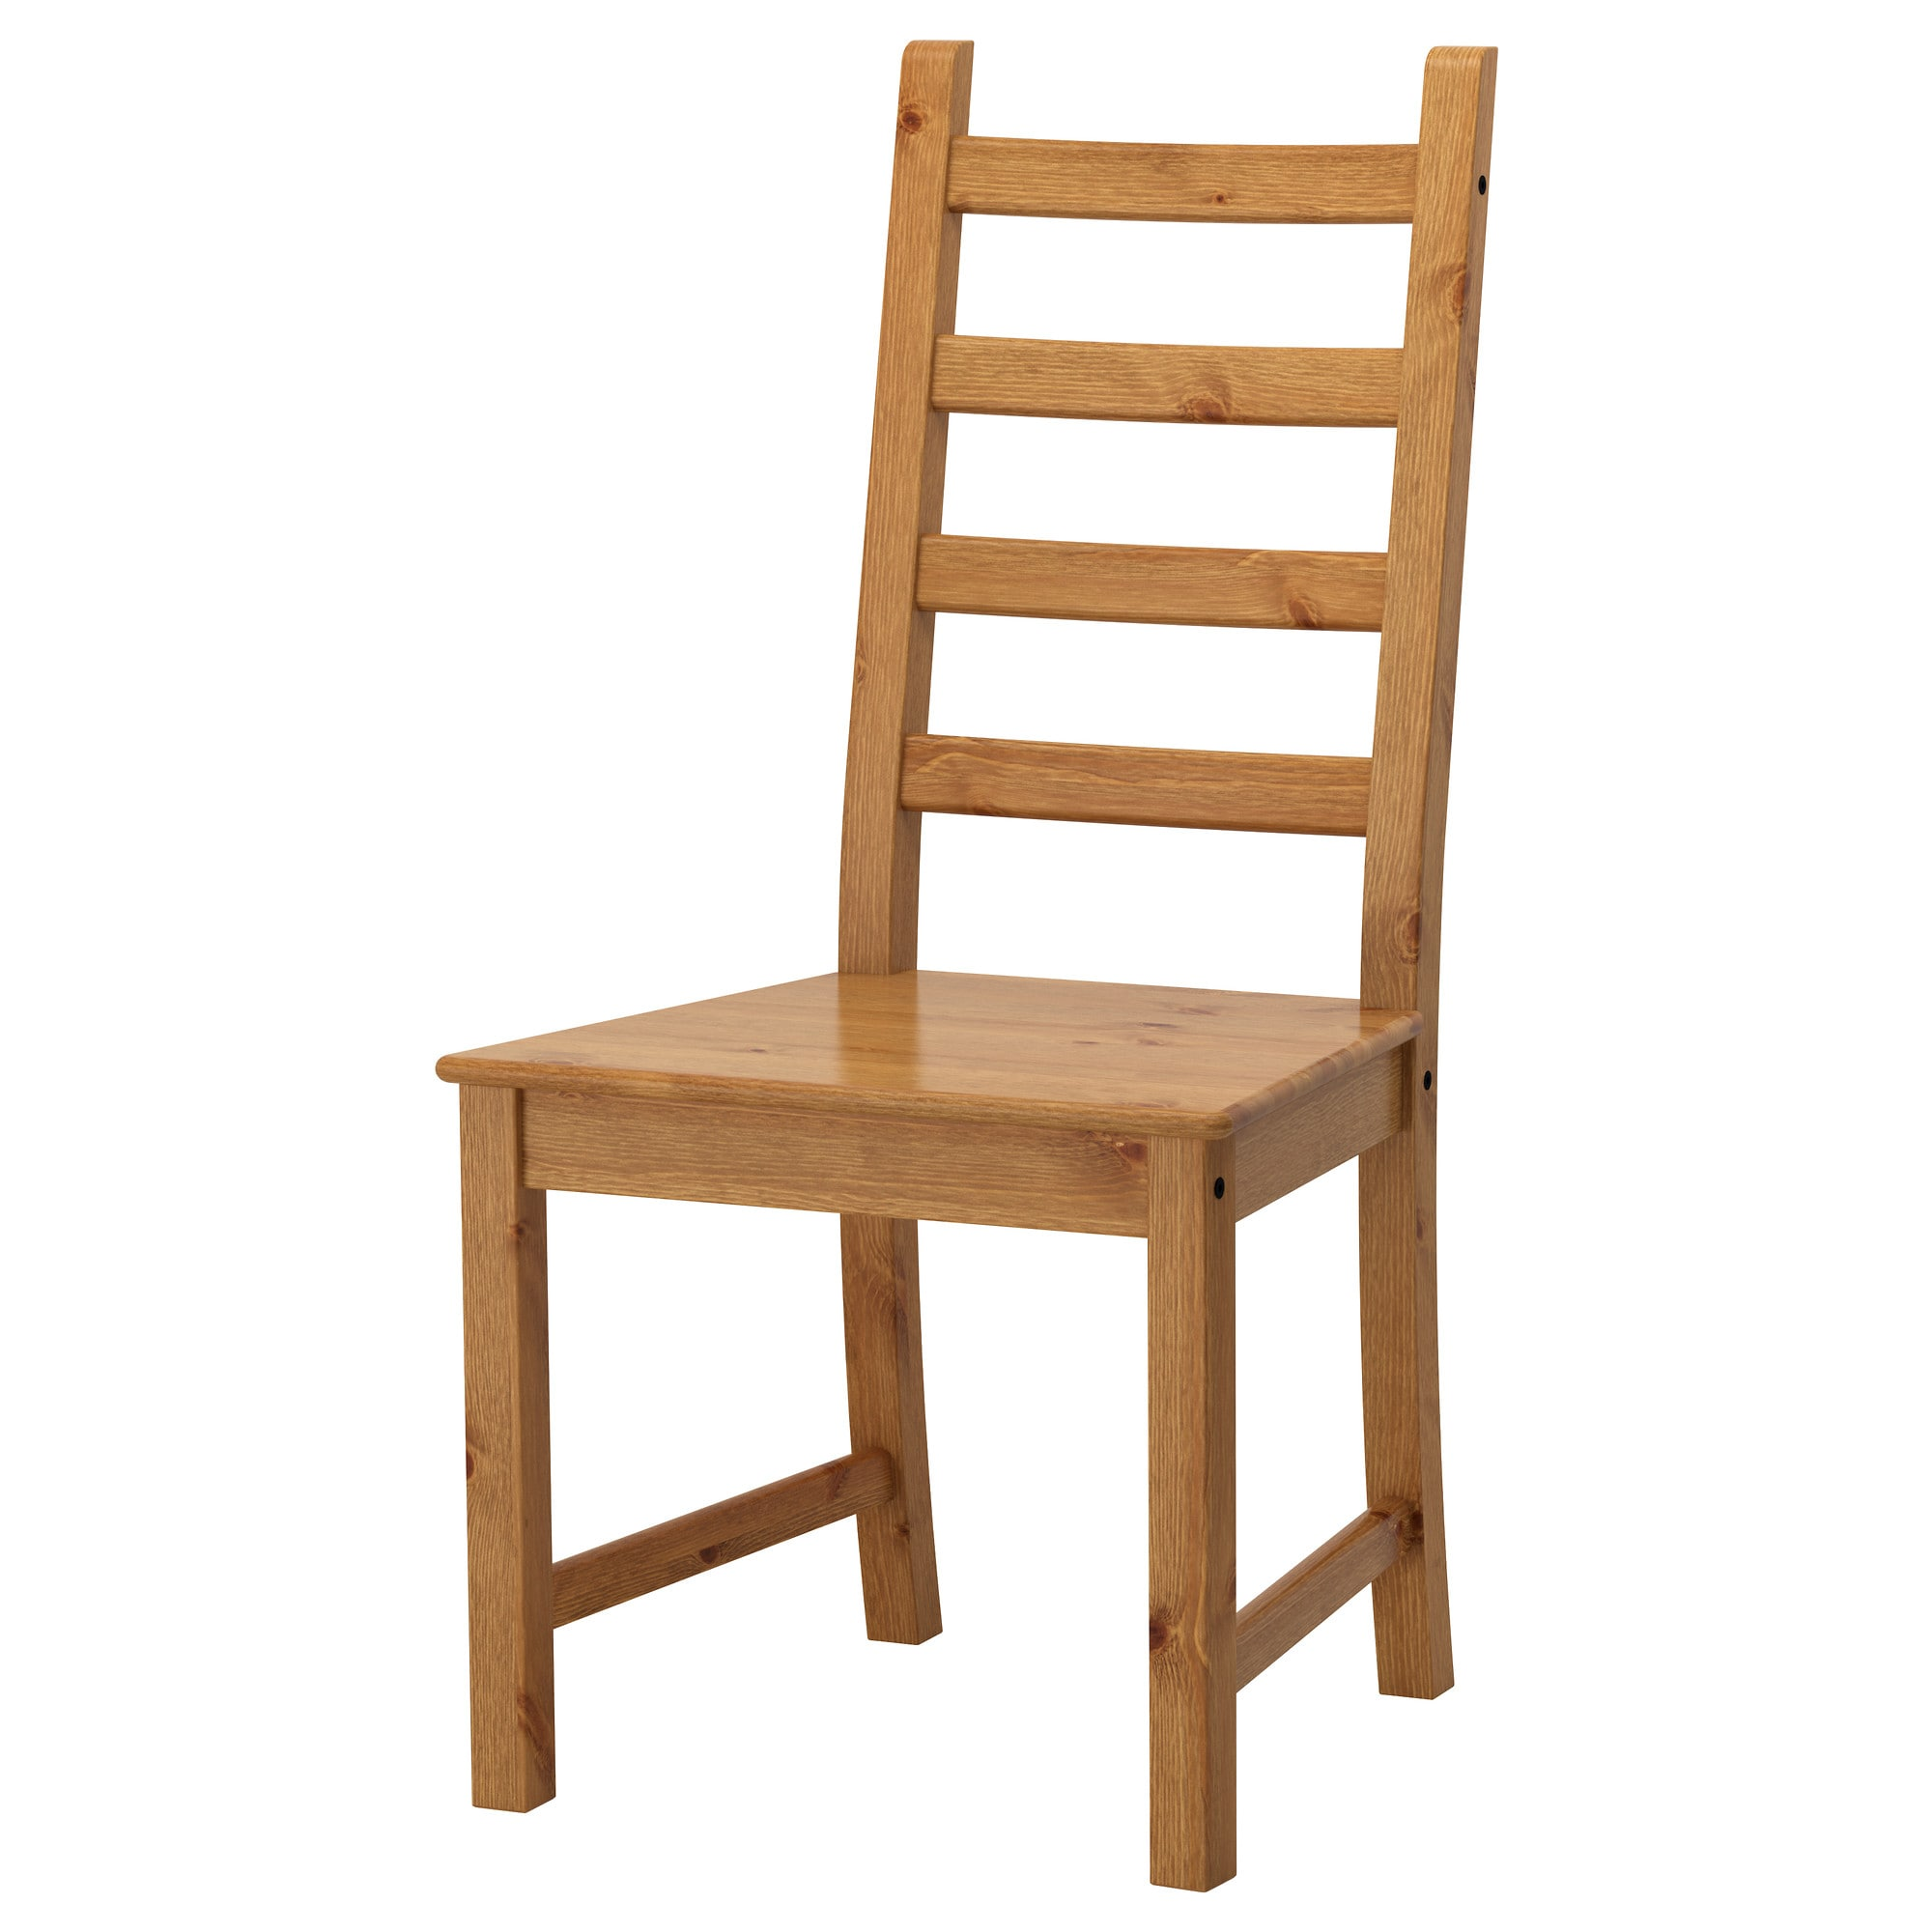 Ikea Kaustby Chair Antique Stain